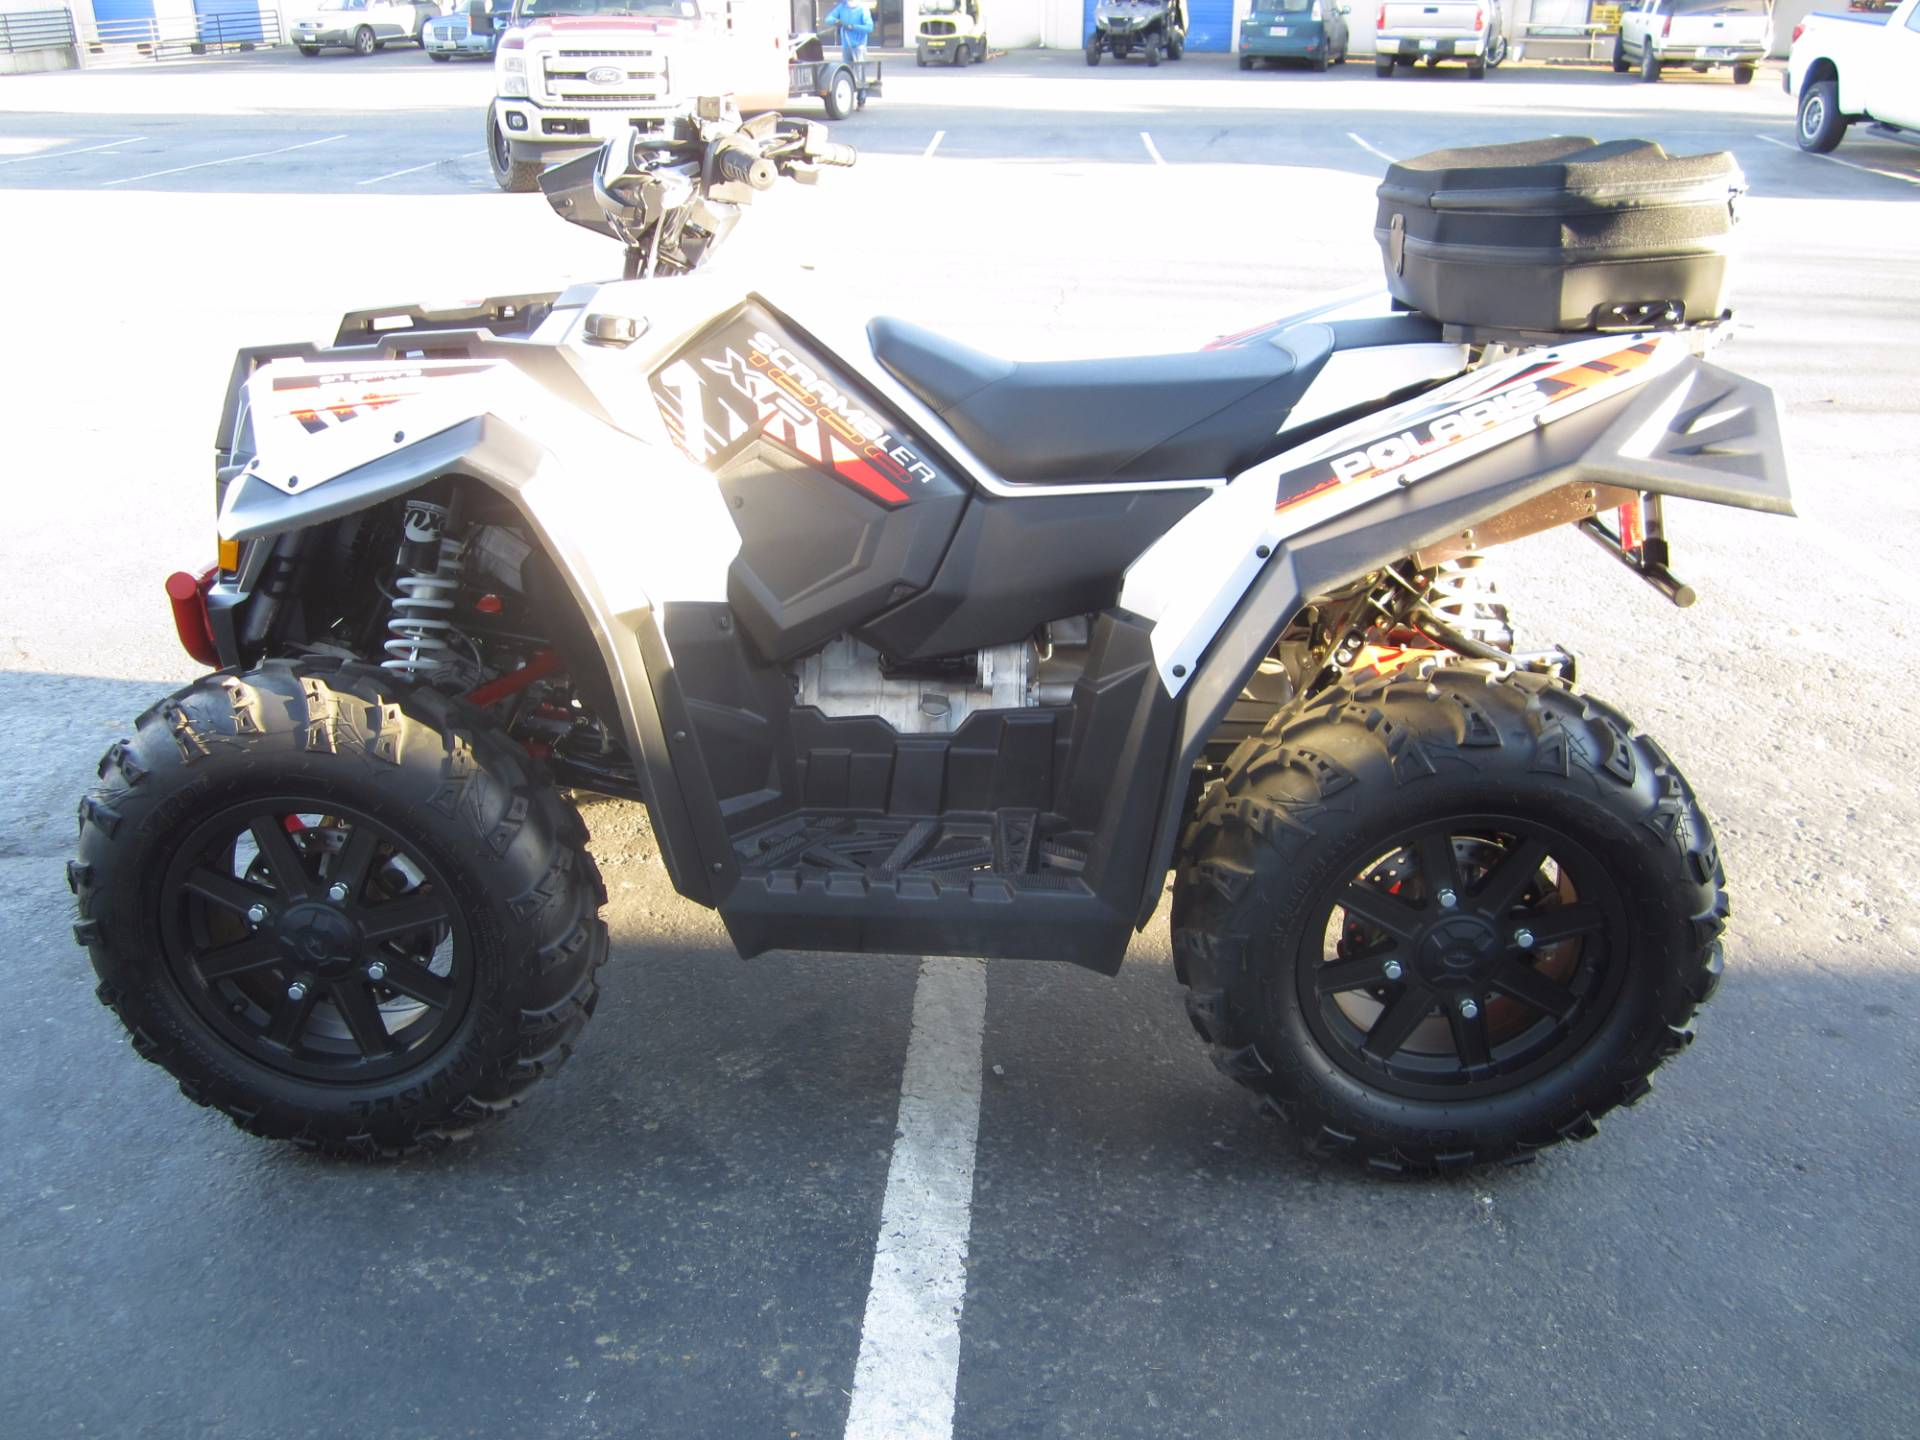 2014 polaris scrambler xp 1000 eps for sale monroe wa 594224. Black Bedroom Furniture Sets. Home Design Ideas